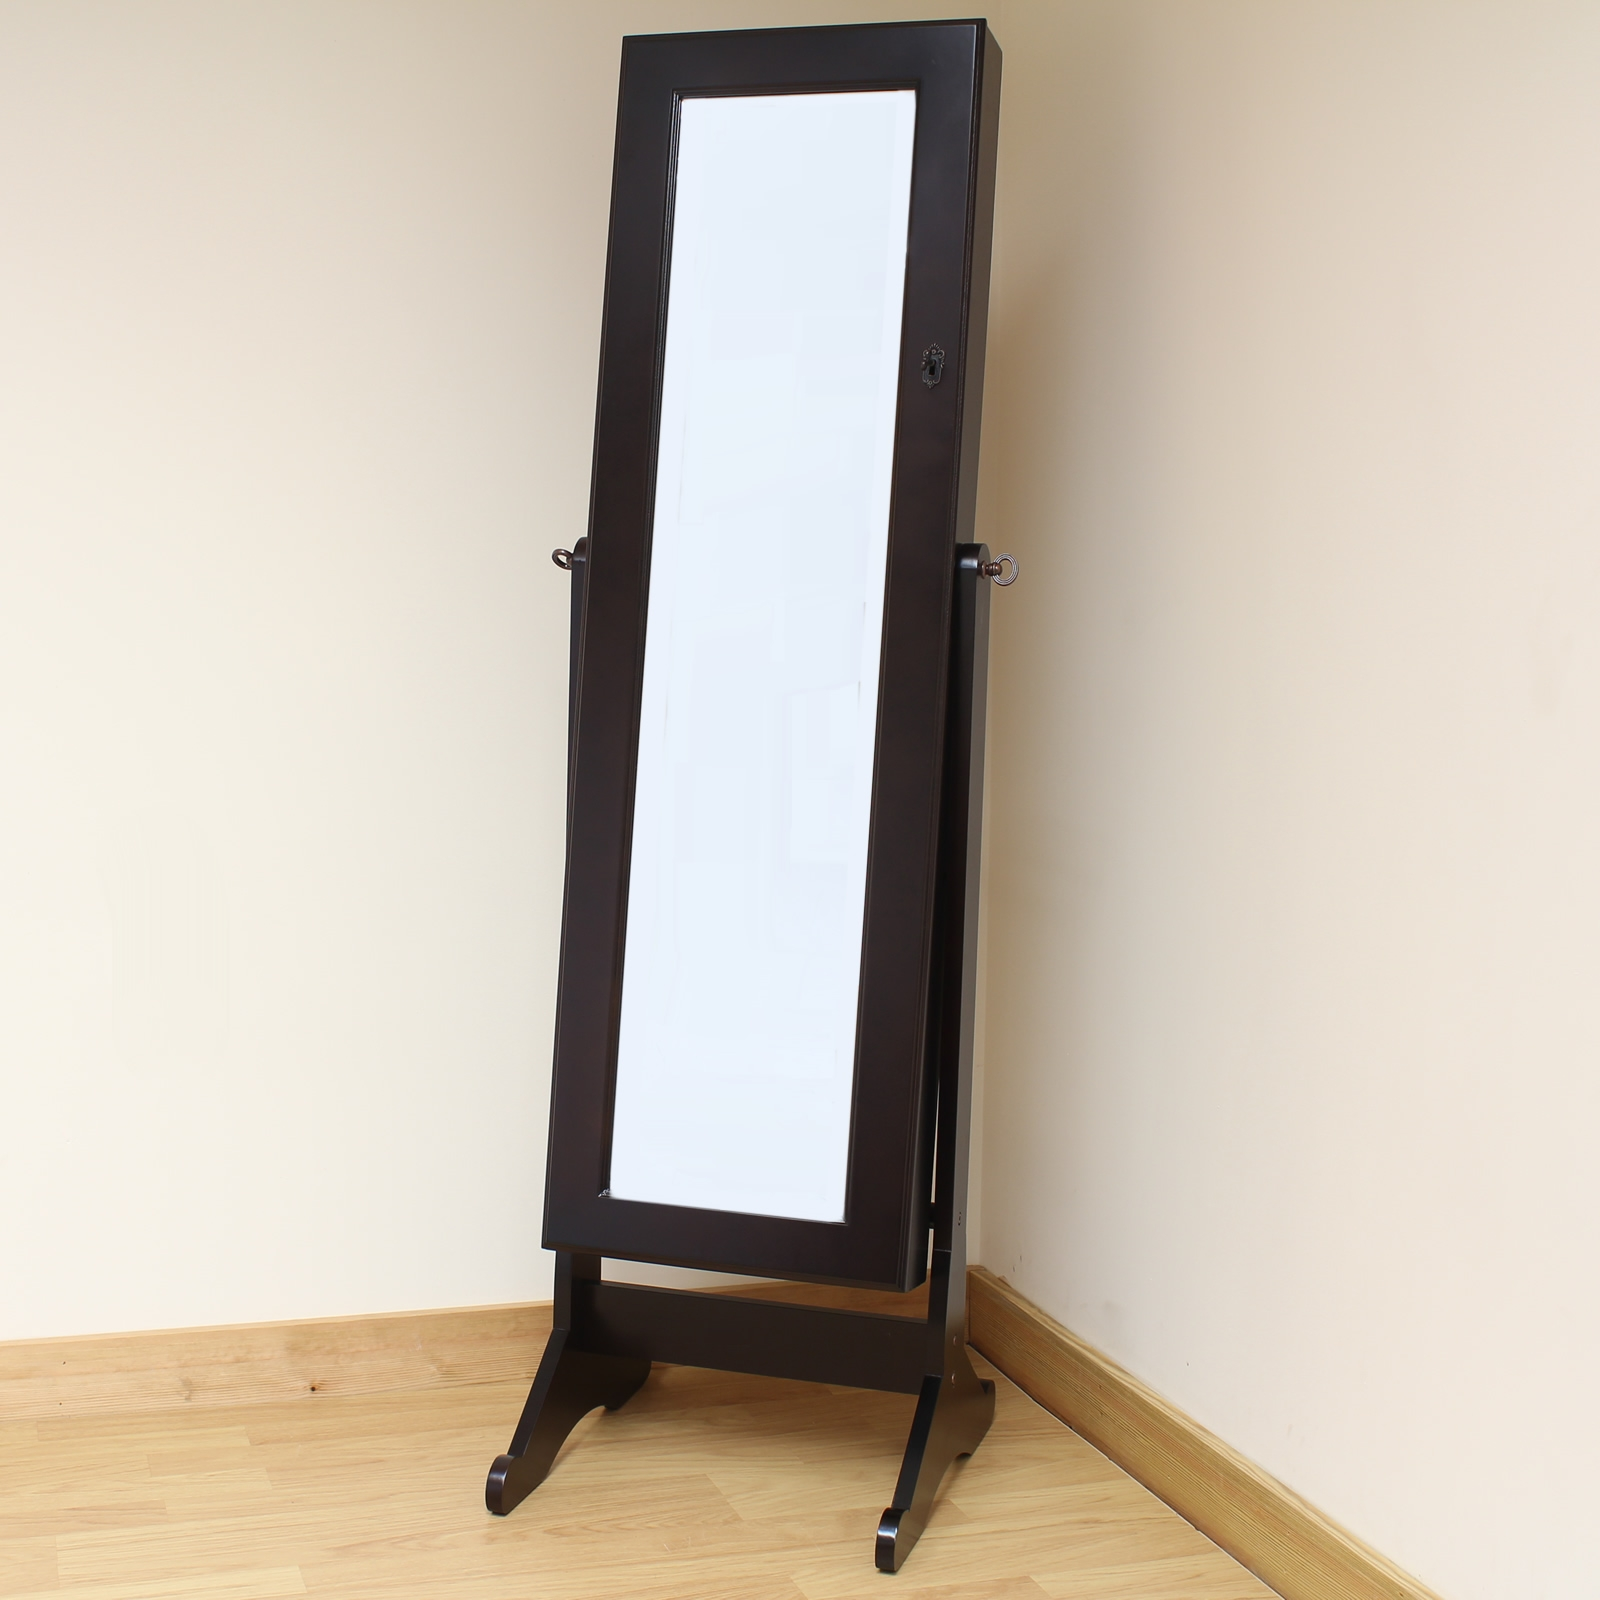 Flooring Decorative Full Length Wall Mirror Tonyswadenalocker For Black Floor Standing Mirror (Image 7 of 15)